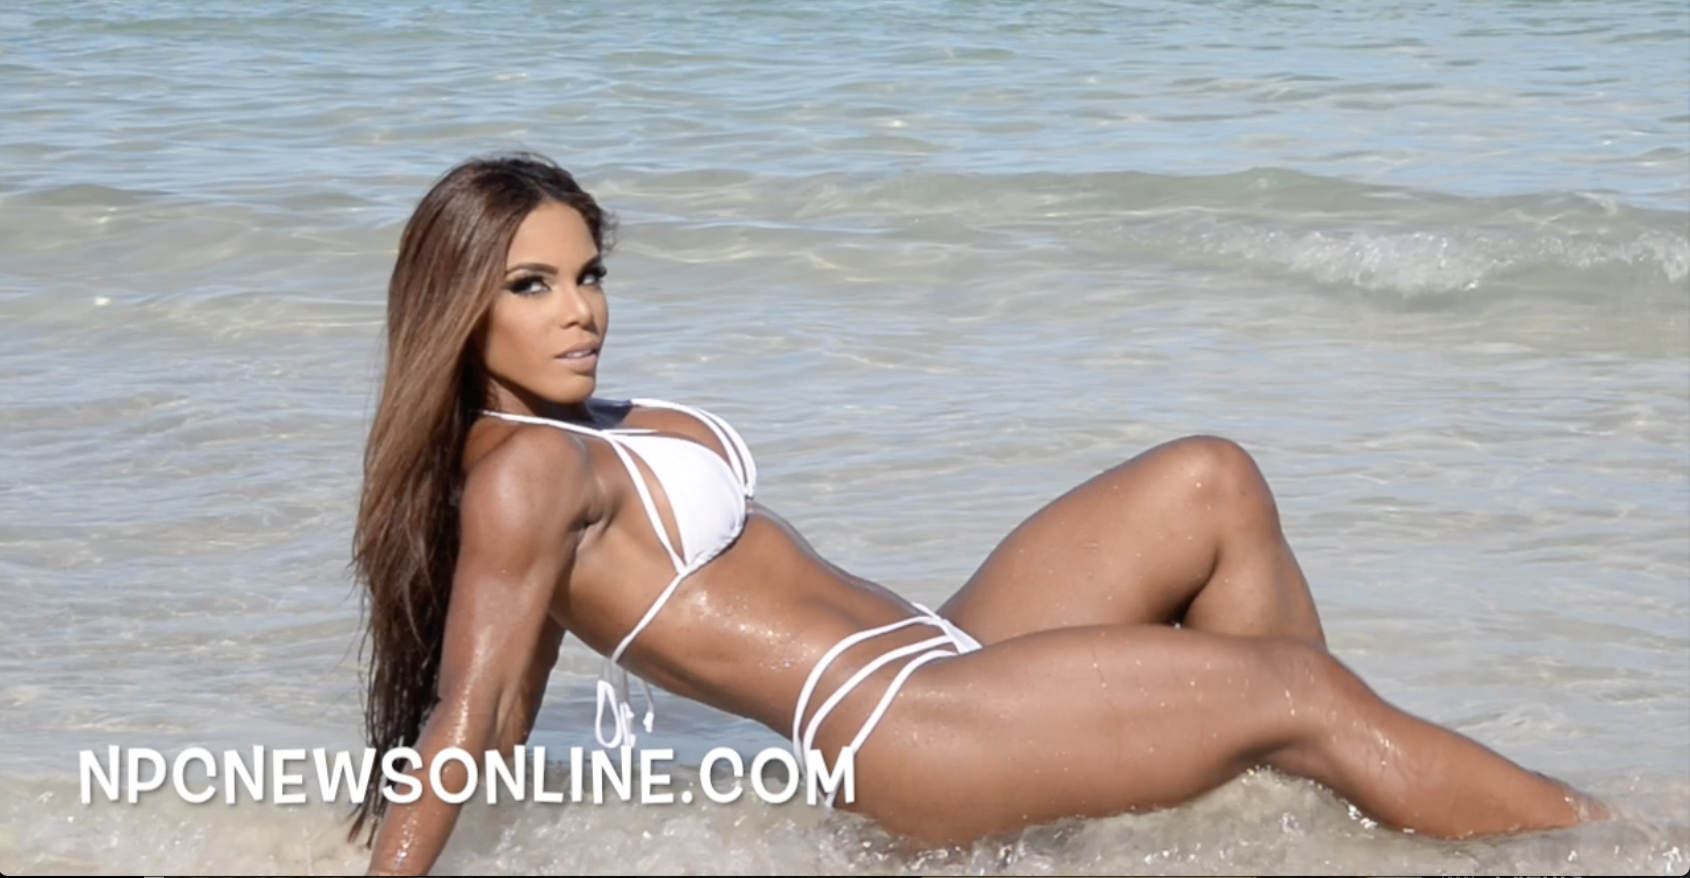 IFBB BIKINI PRO YARISHNA AYALA: J.M. MANION SOUTH BEACH, MIAMI SHOOT 2017